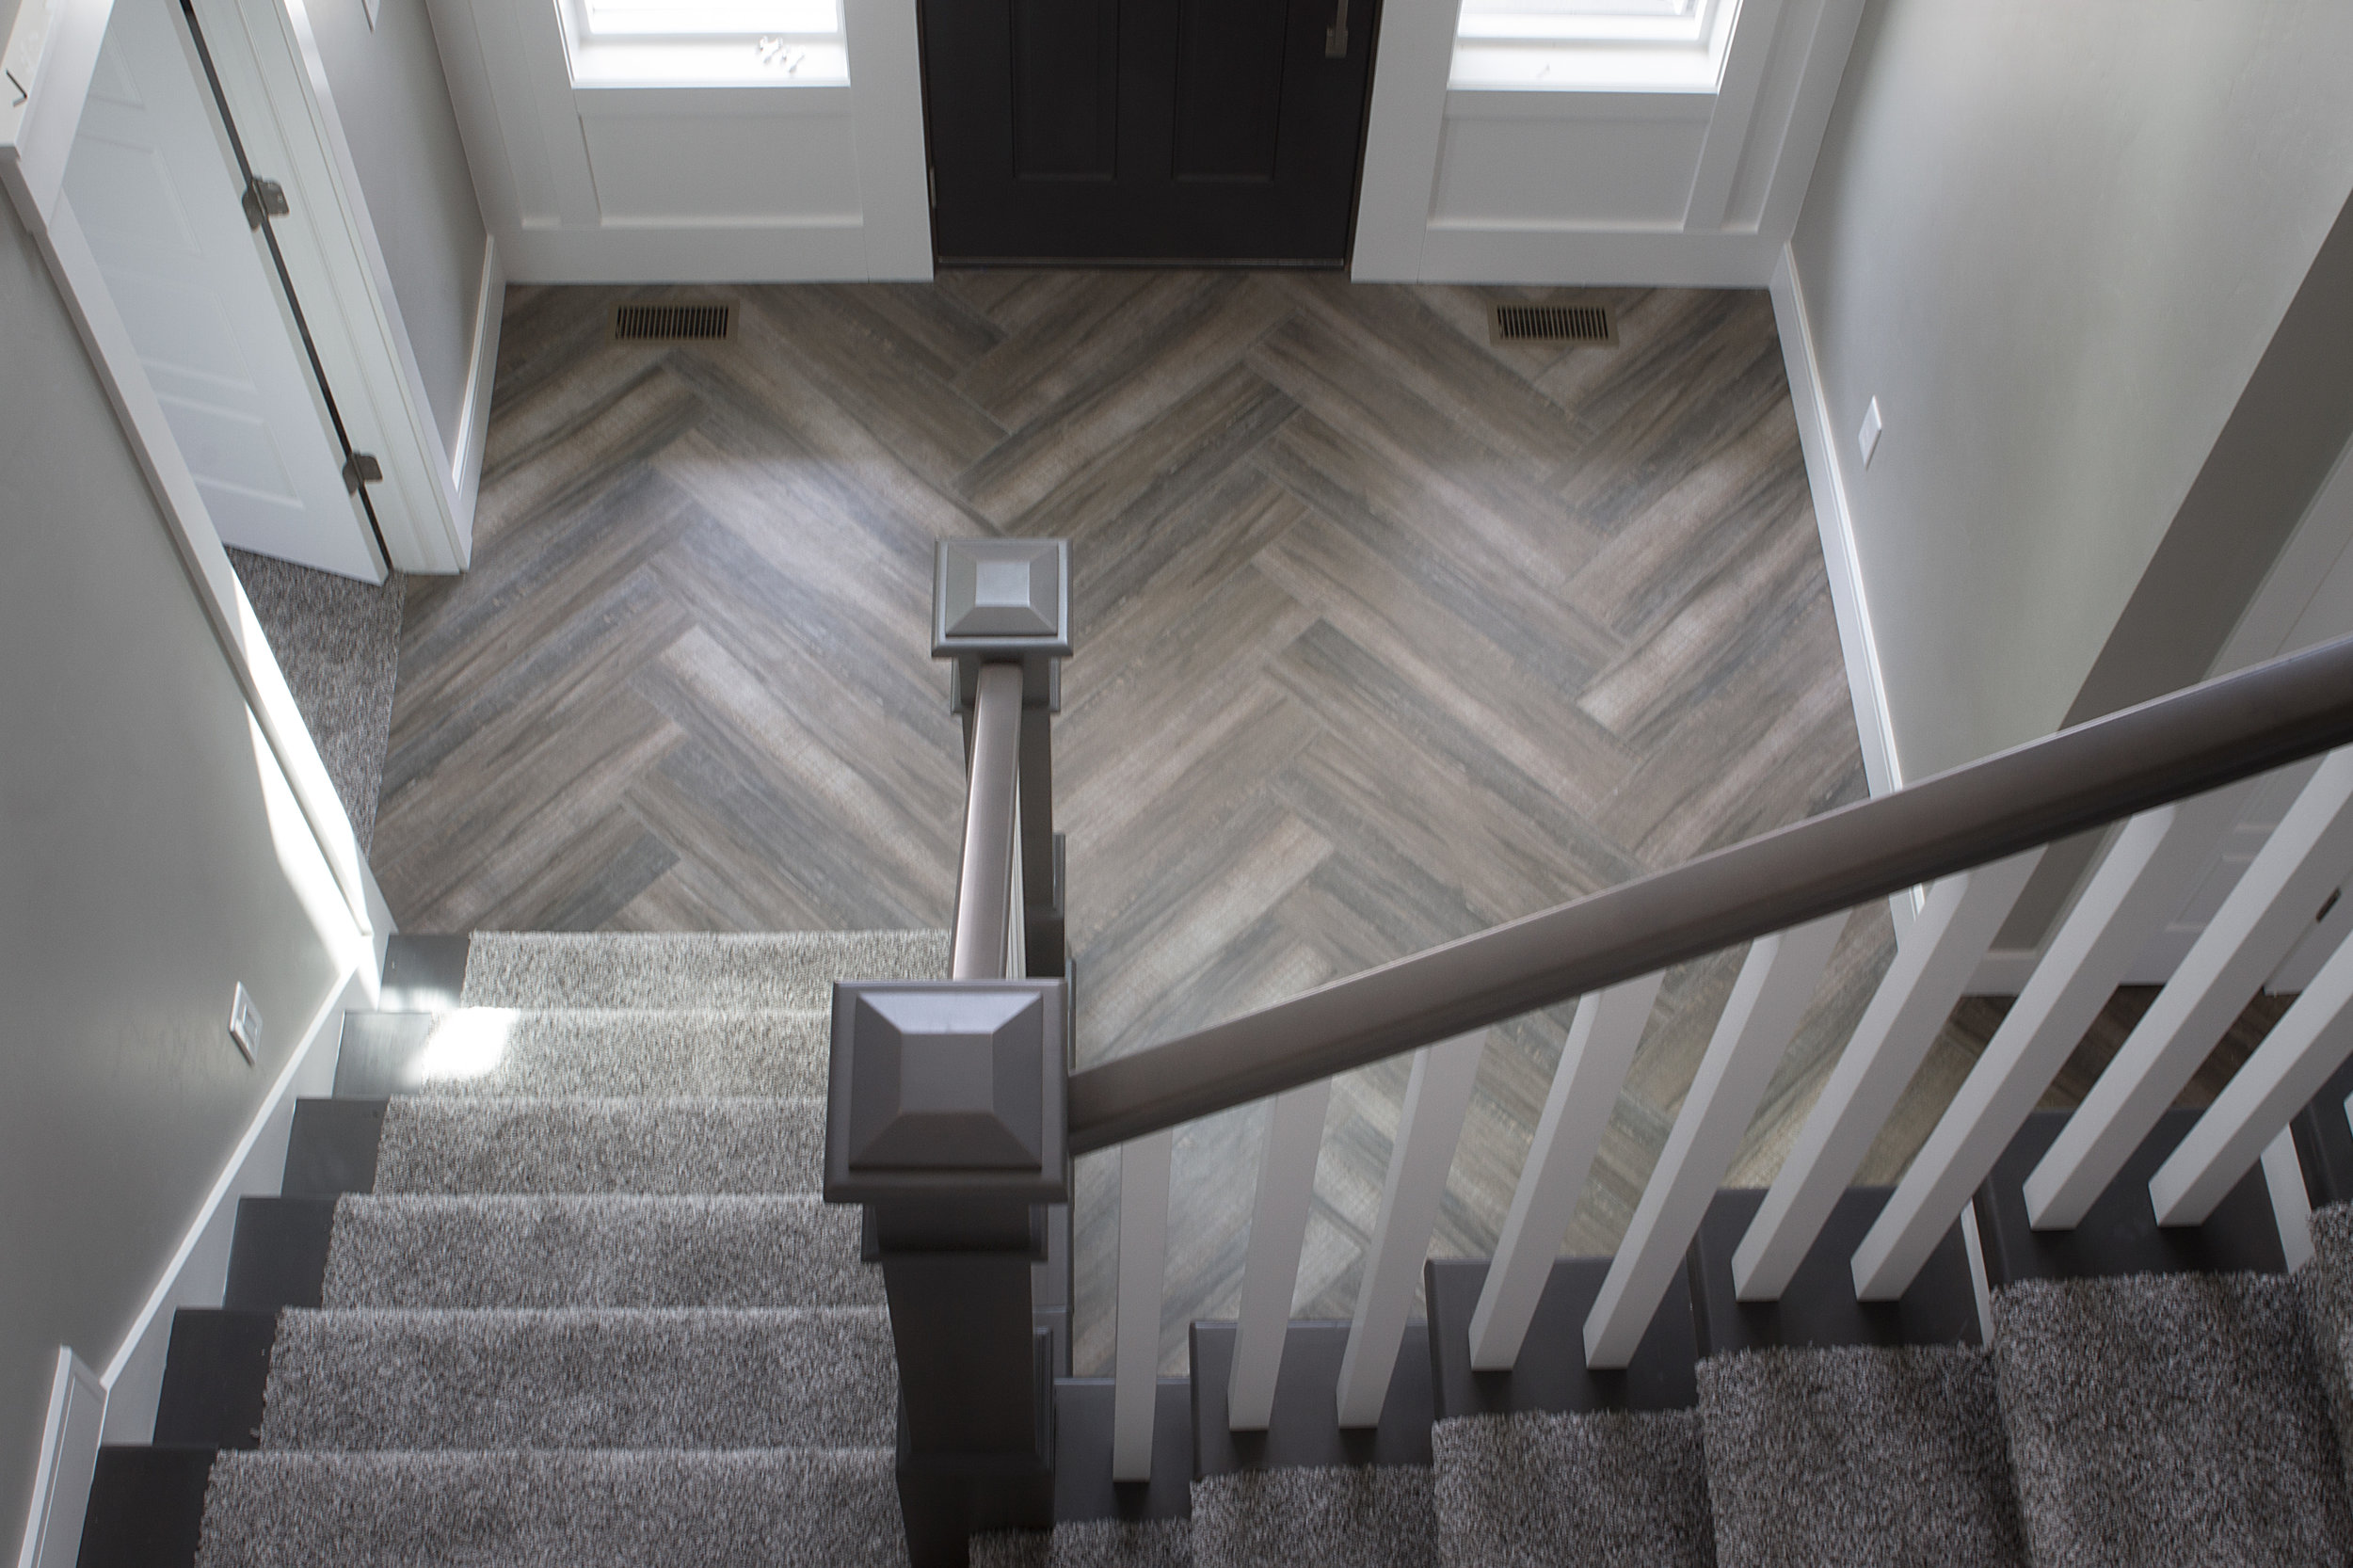 Herringbone Floor Tile Home Design Ideas And Pictures